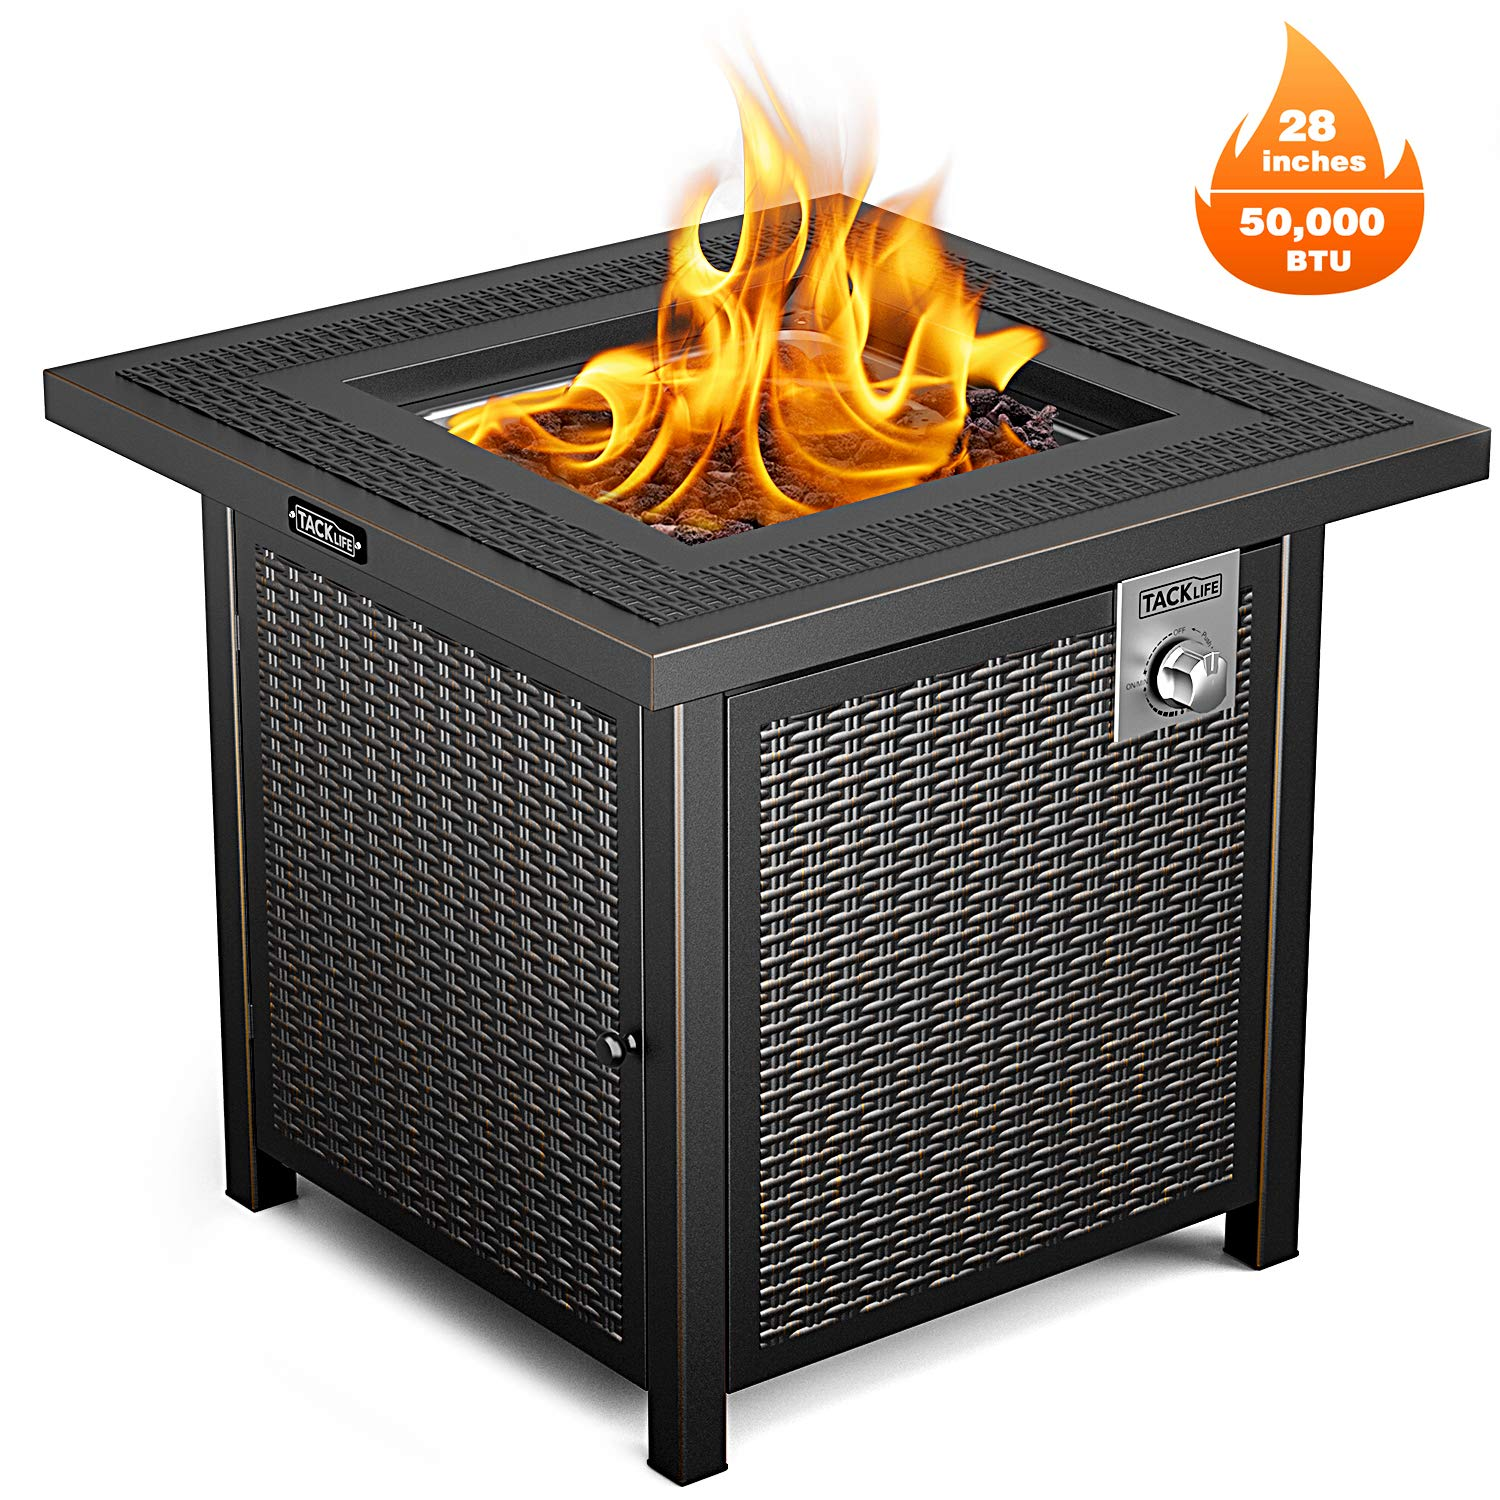 TACKLIFE Propane Fire Pit Table, Outdoor Companion, 28 Inch 50,000 BTU Auto-Ignition Gas Fire Pit Table with Cover, CSA Certification and Strong Striped Steel Surface, by TACKLIFE